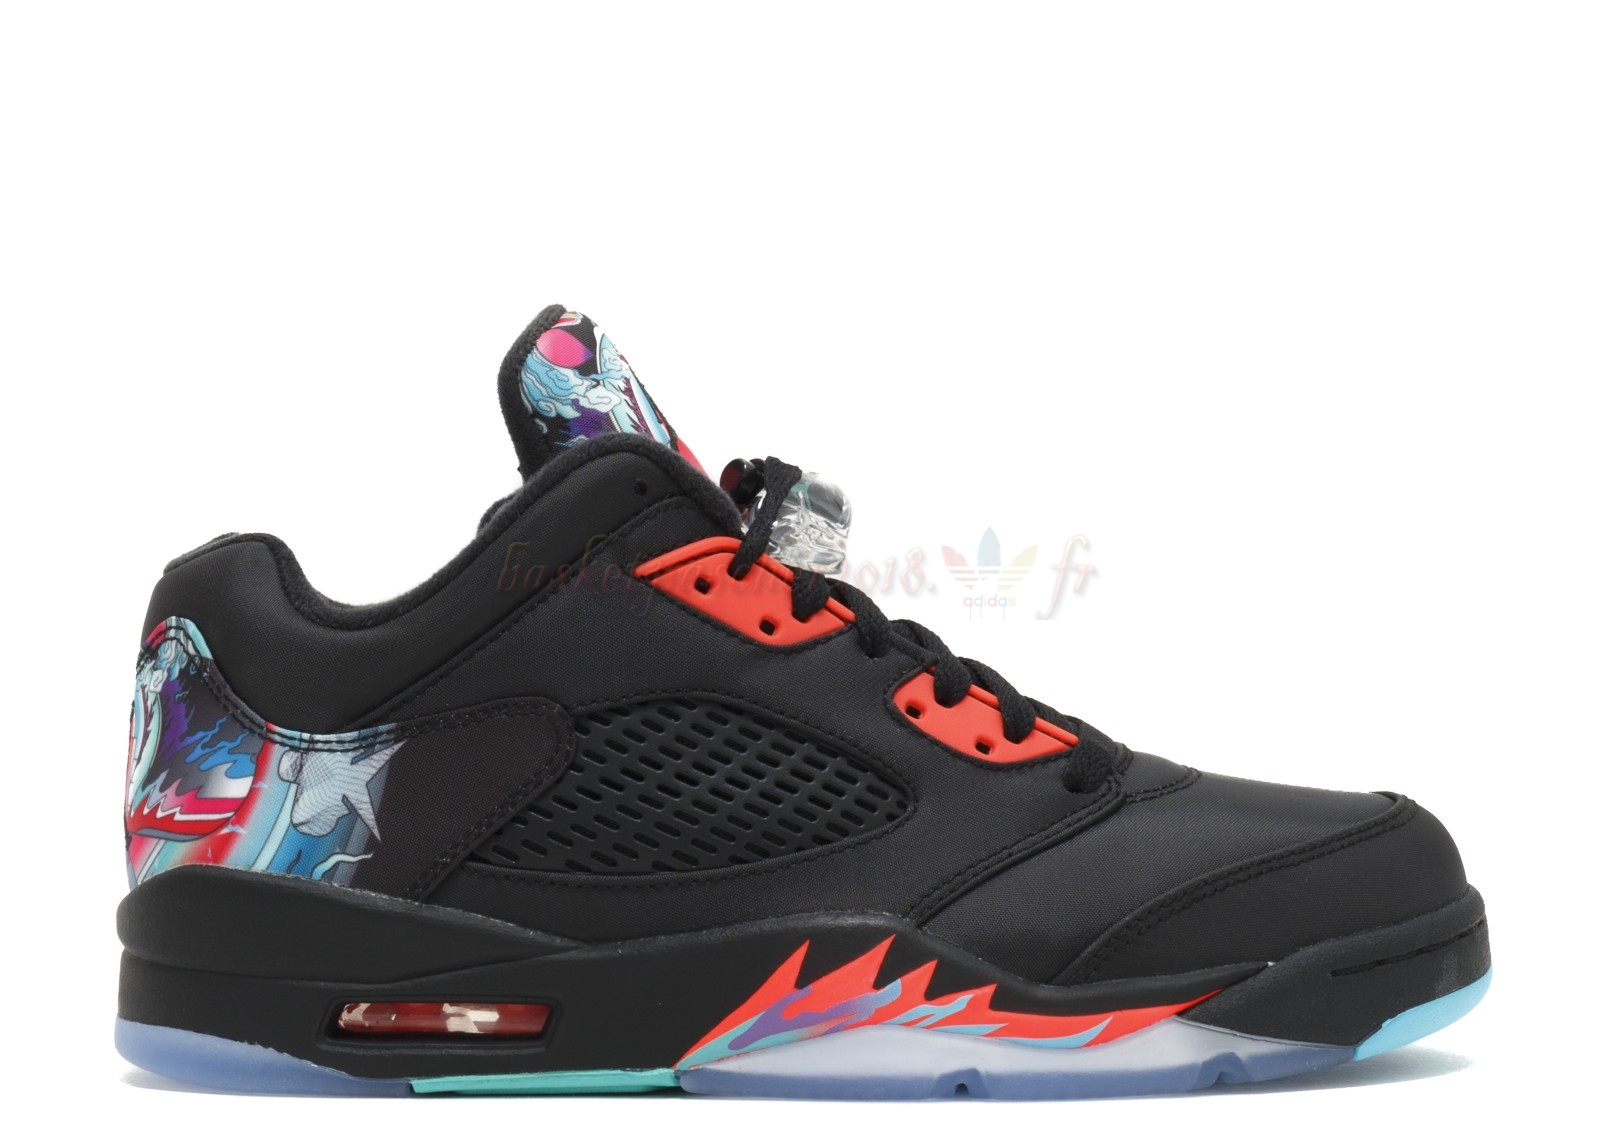 "Vente Chaude Chaussures De Basketball Homme Air Jordan 5 Retro Low Cny ""Chinese New Year"" Noir (840475-060) Pas Cher"